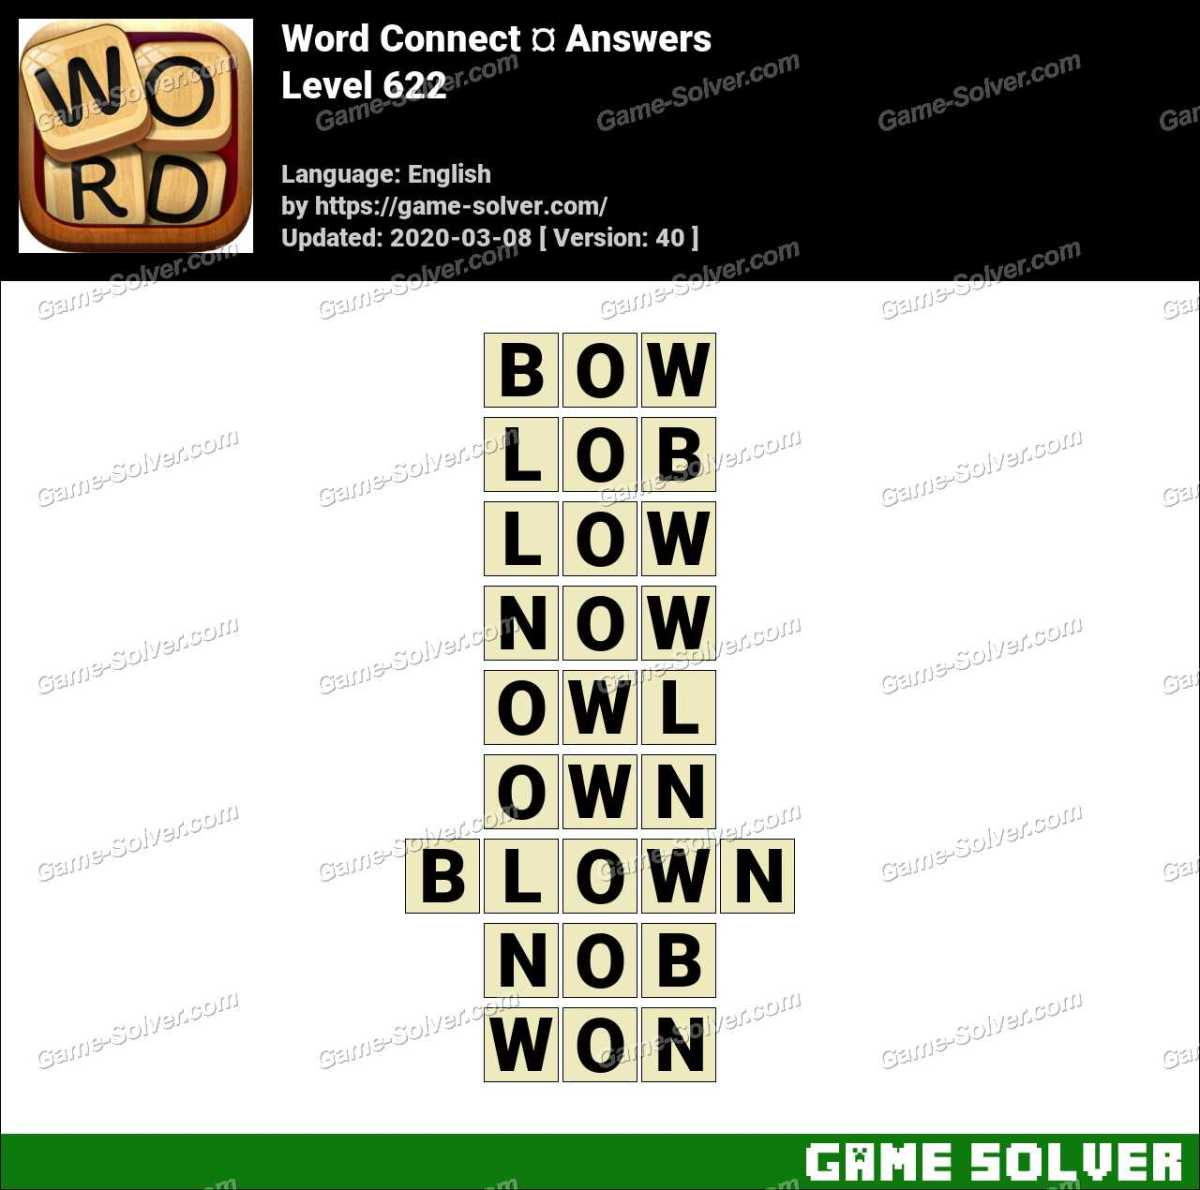 Word Connect Level 622 Answers